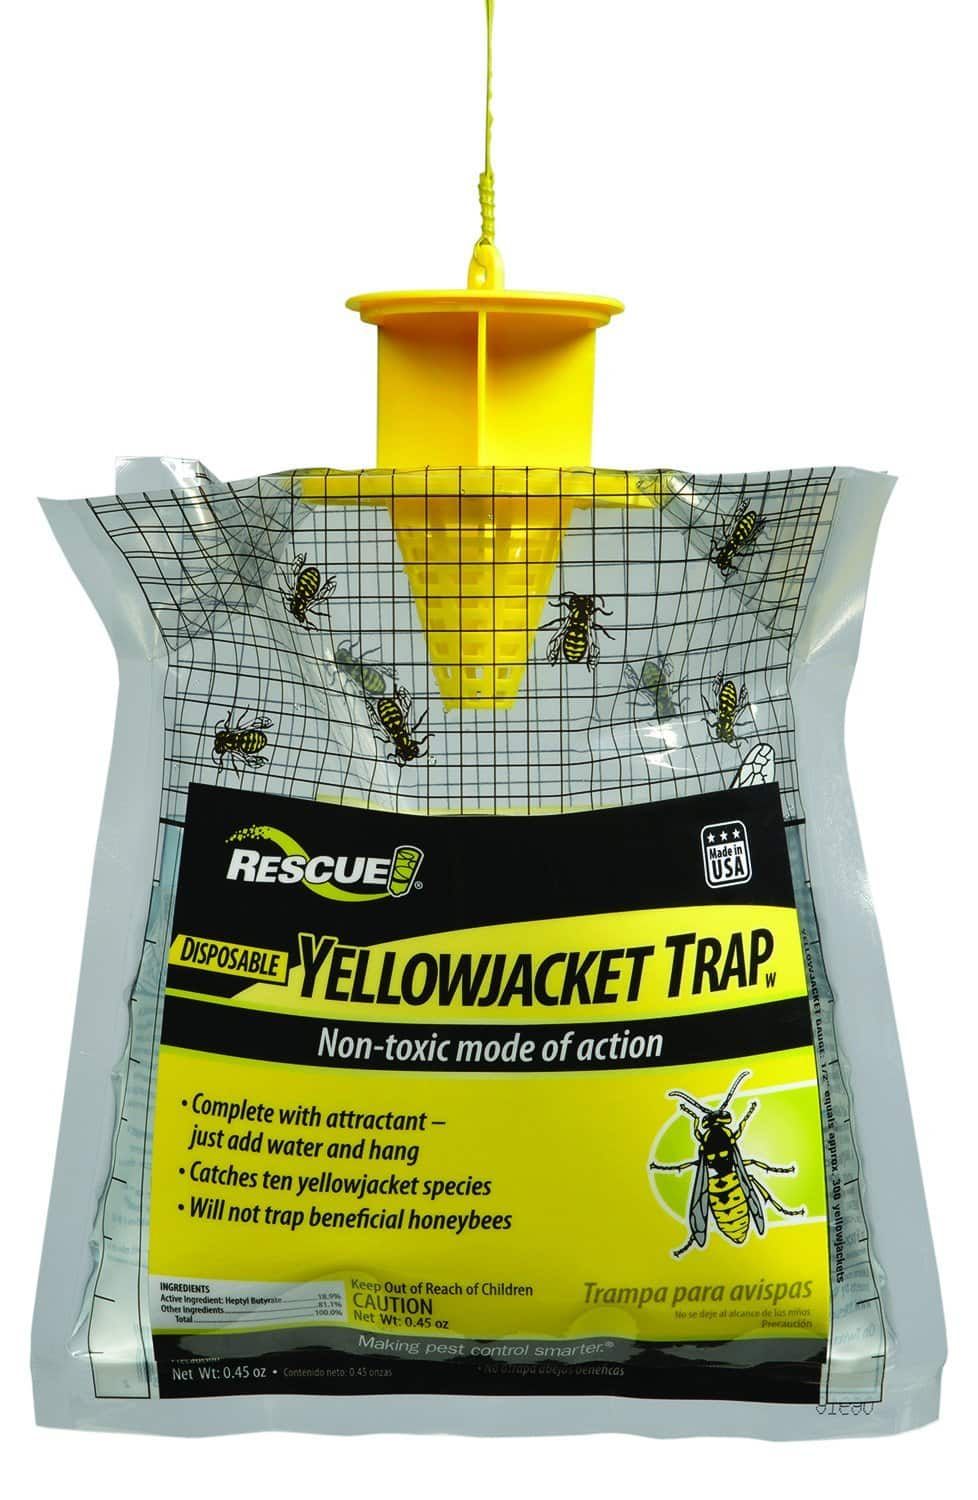 RESCUE! Non-Toxic Disposable Yellowjacket Trap, East of the Rockies $3.77